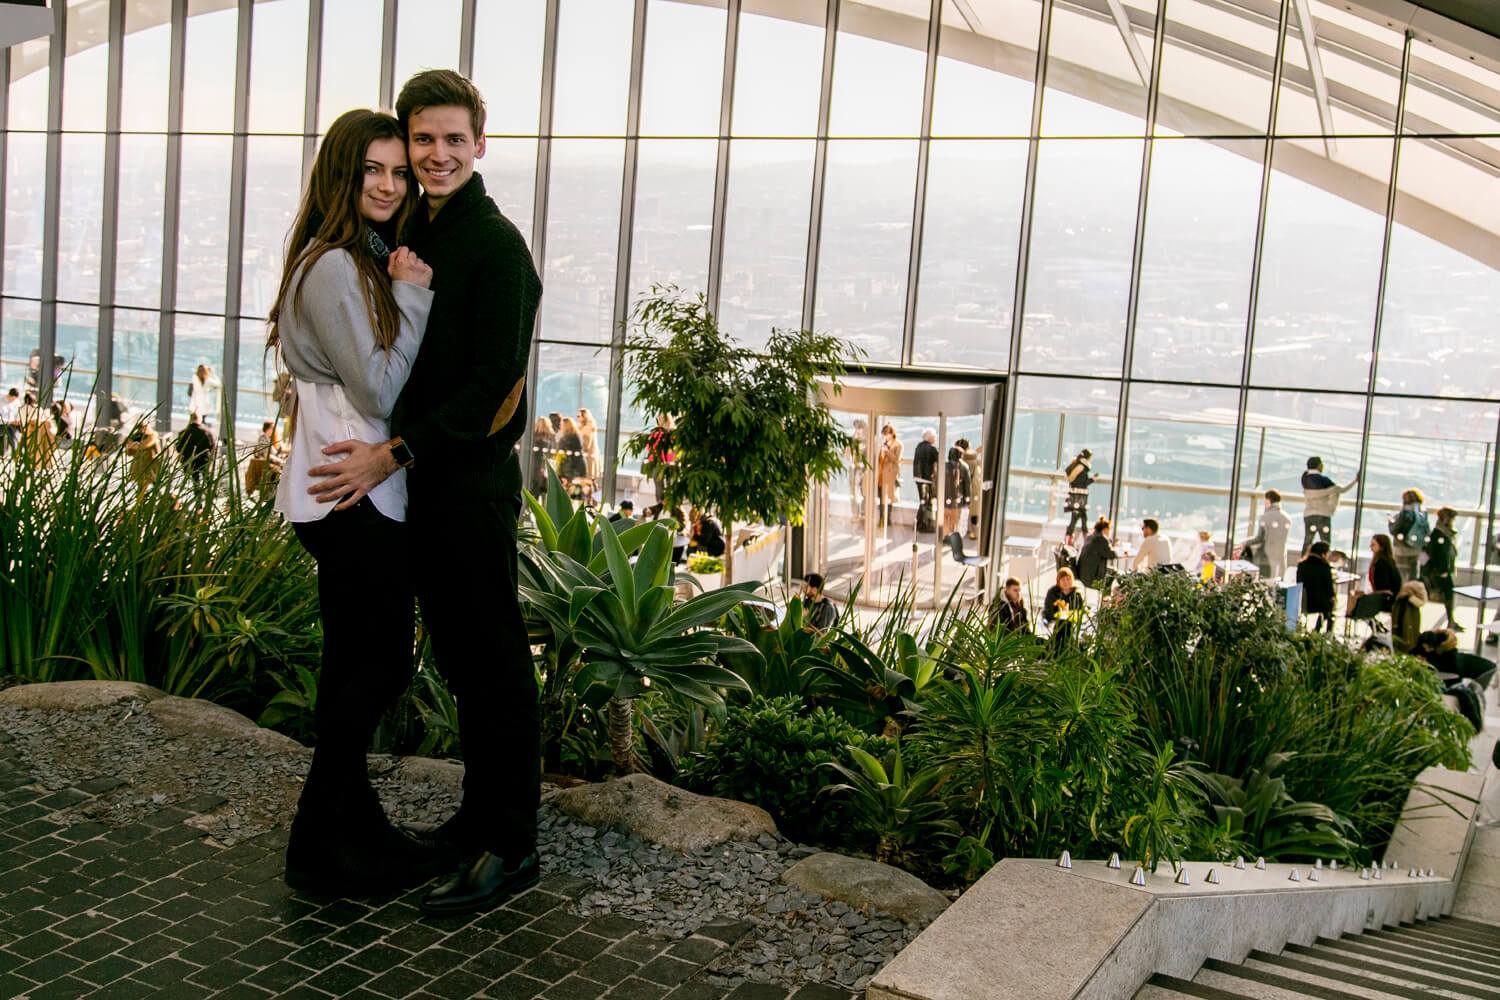 Sky Garden London Proposal   The Best Places To Propose London